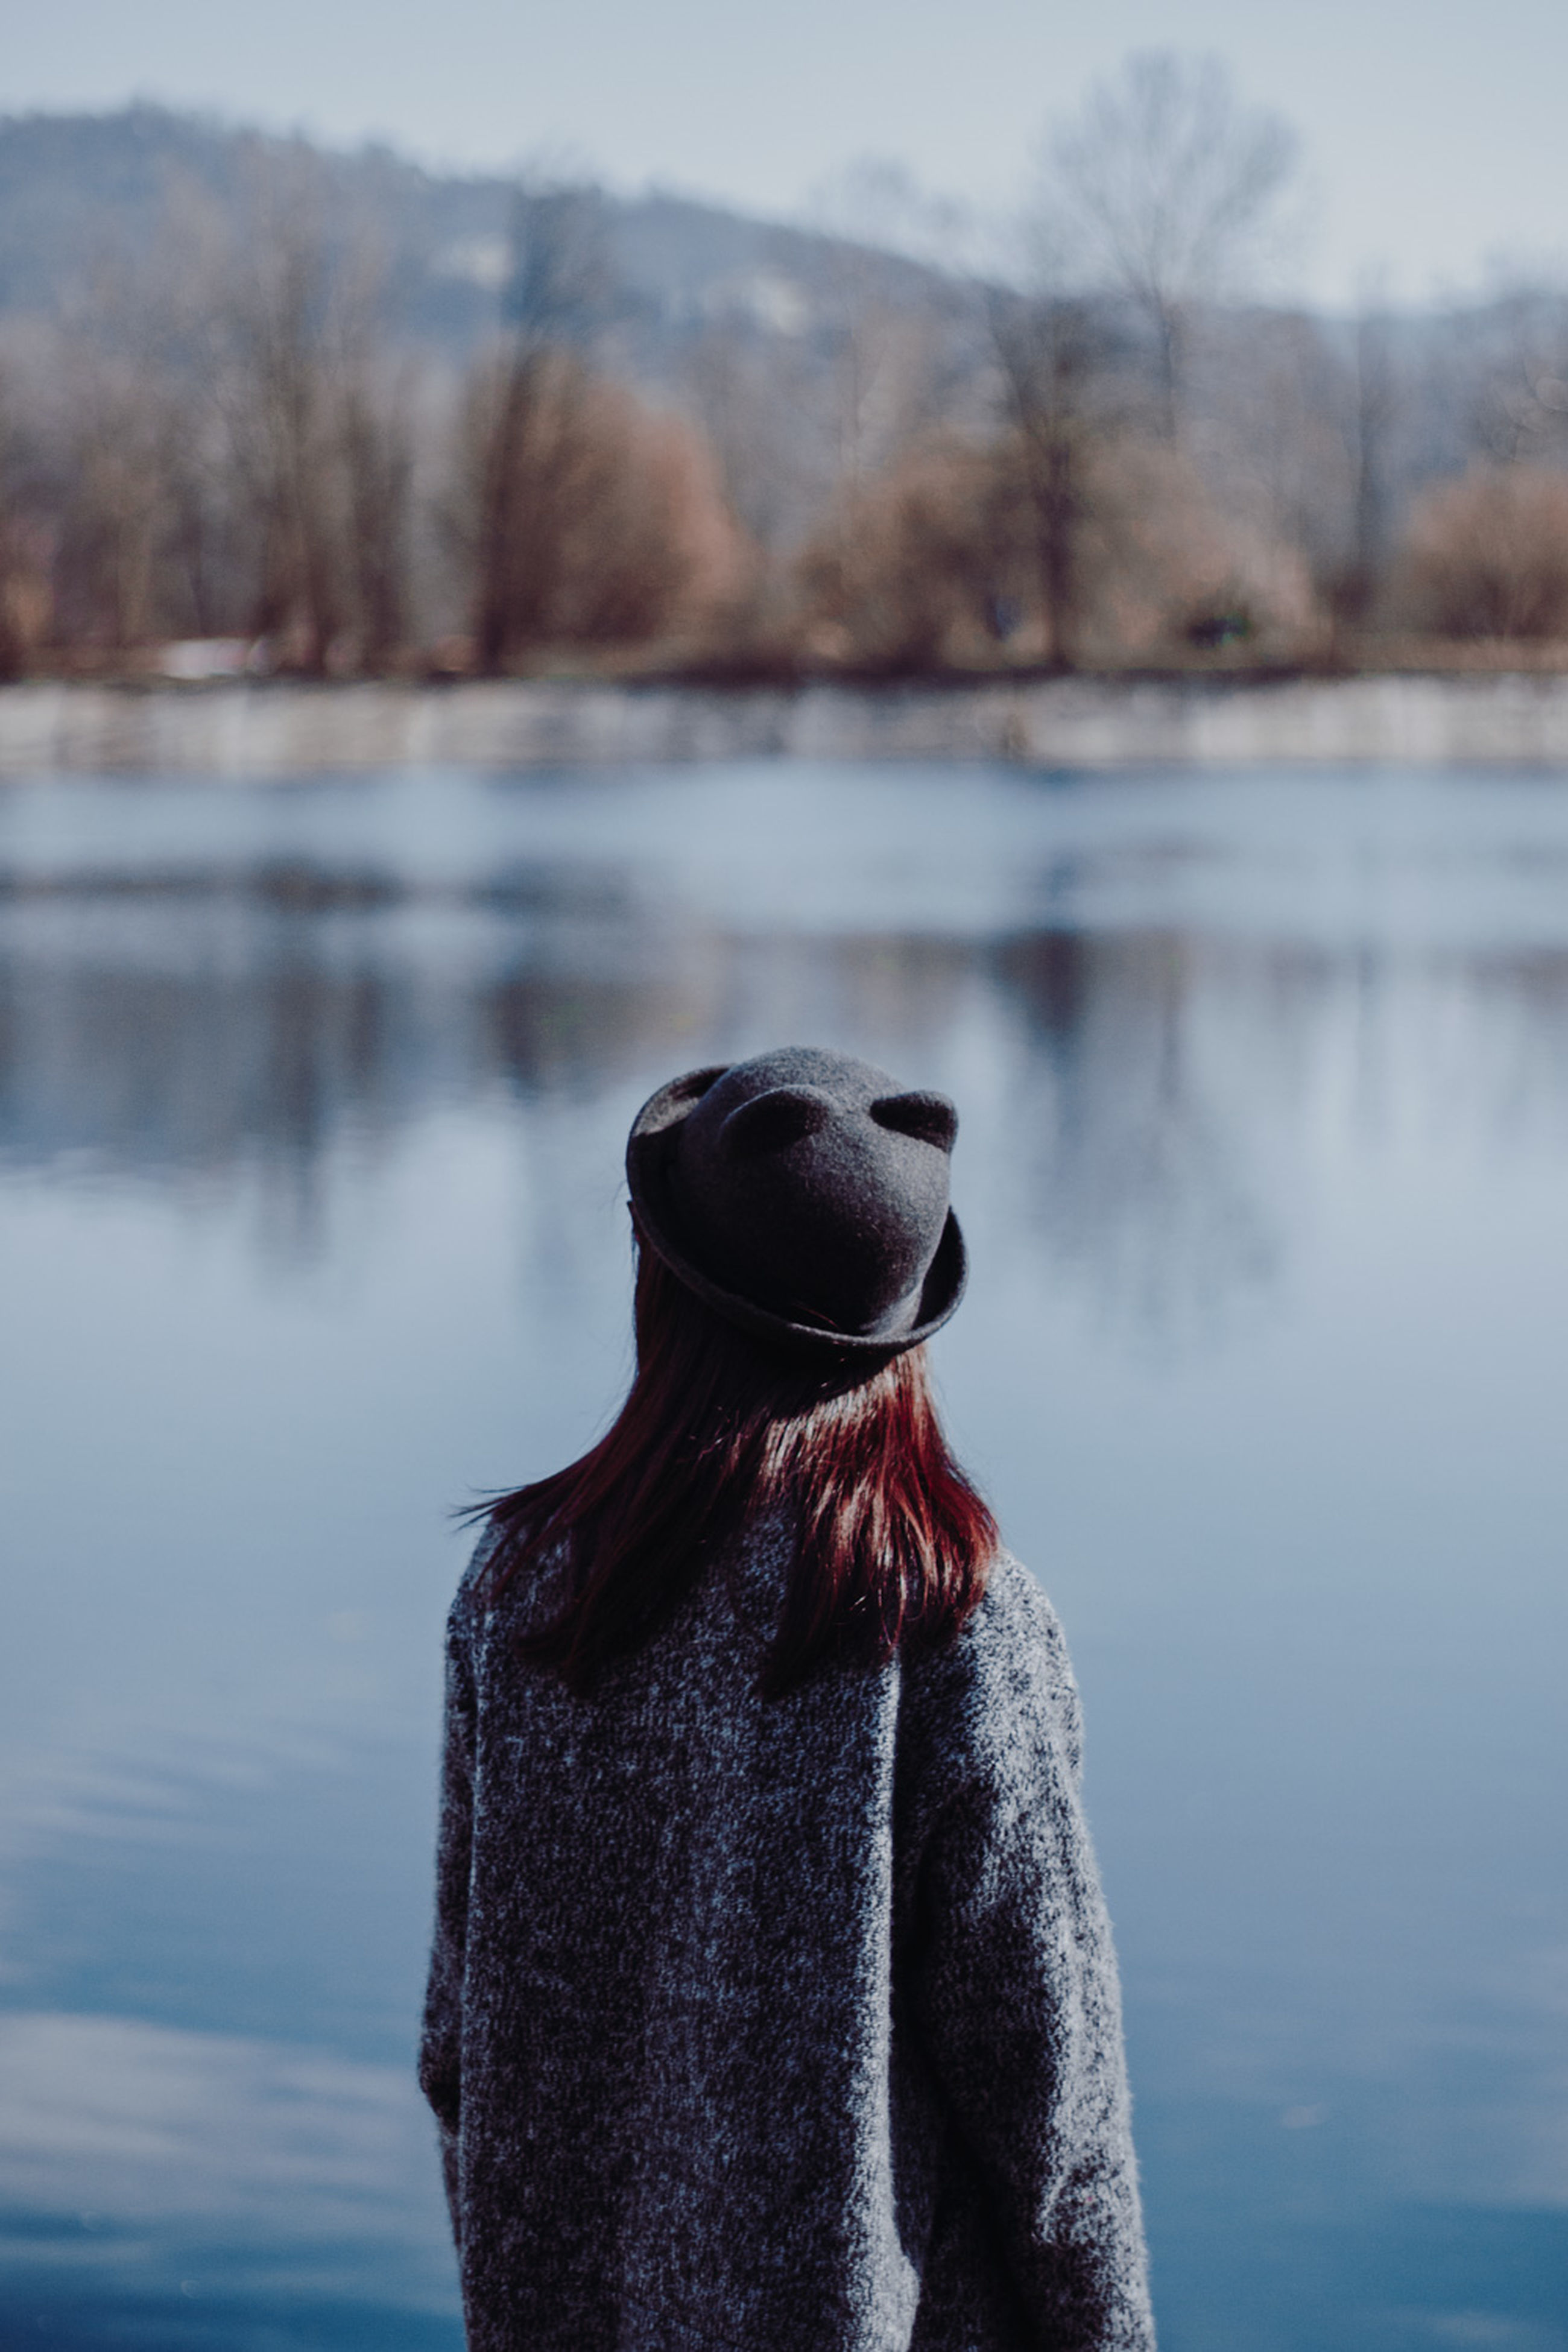 cold temperature, winter, bare tree, real people, lake, warm clothing, one person, snow, water, nature, tree, outdoors, day, people